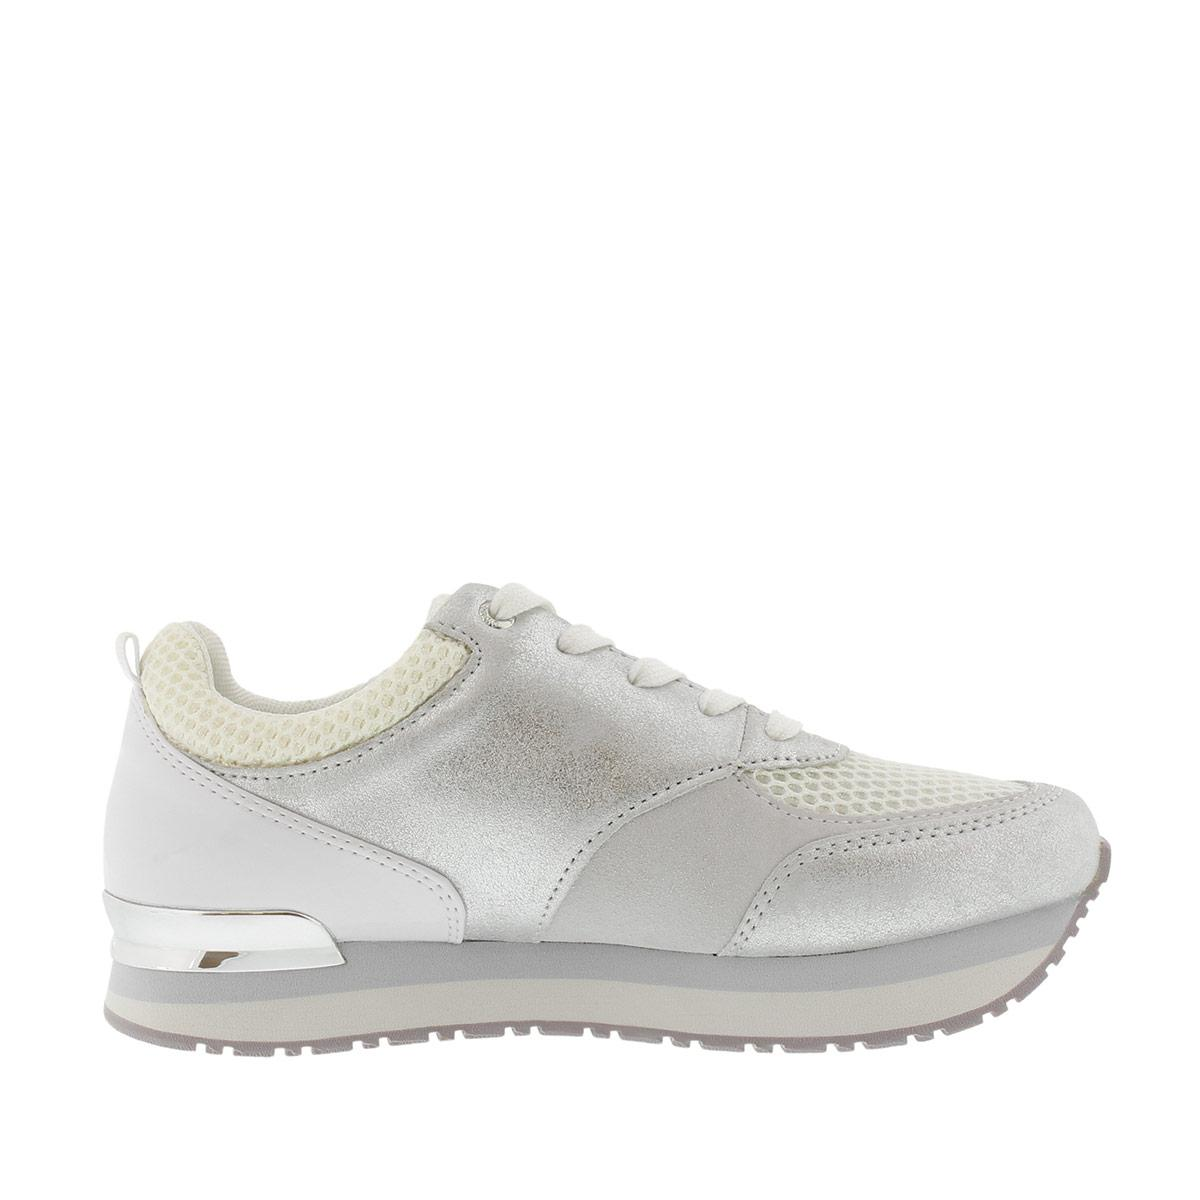 Guess Rimma Sneaker Leather White